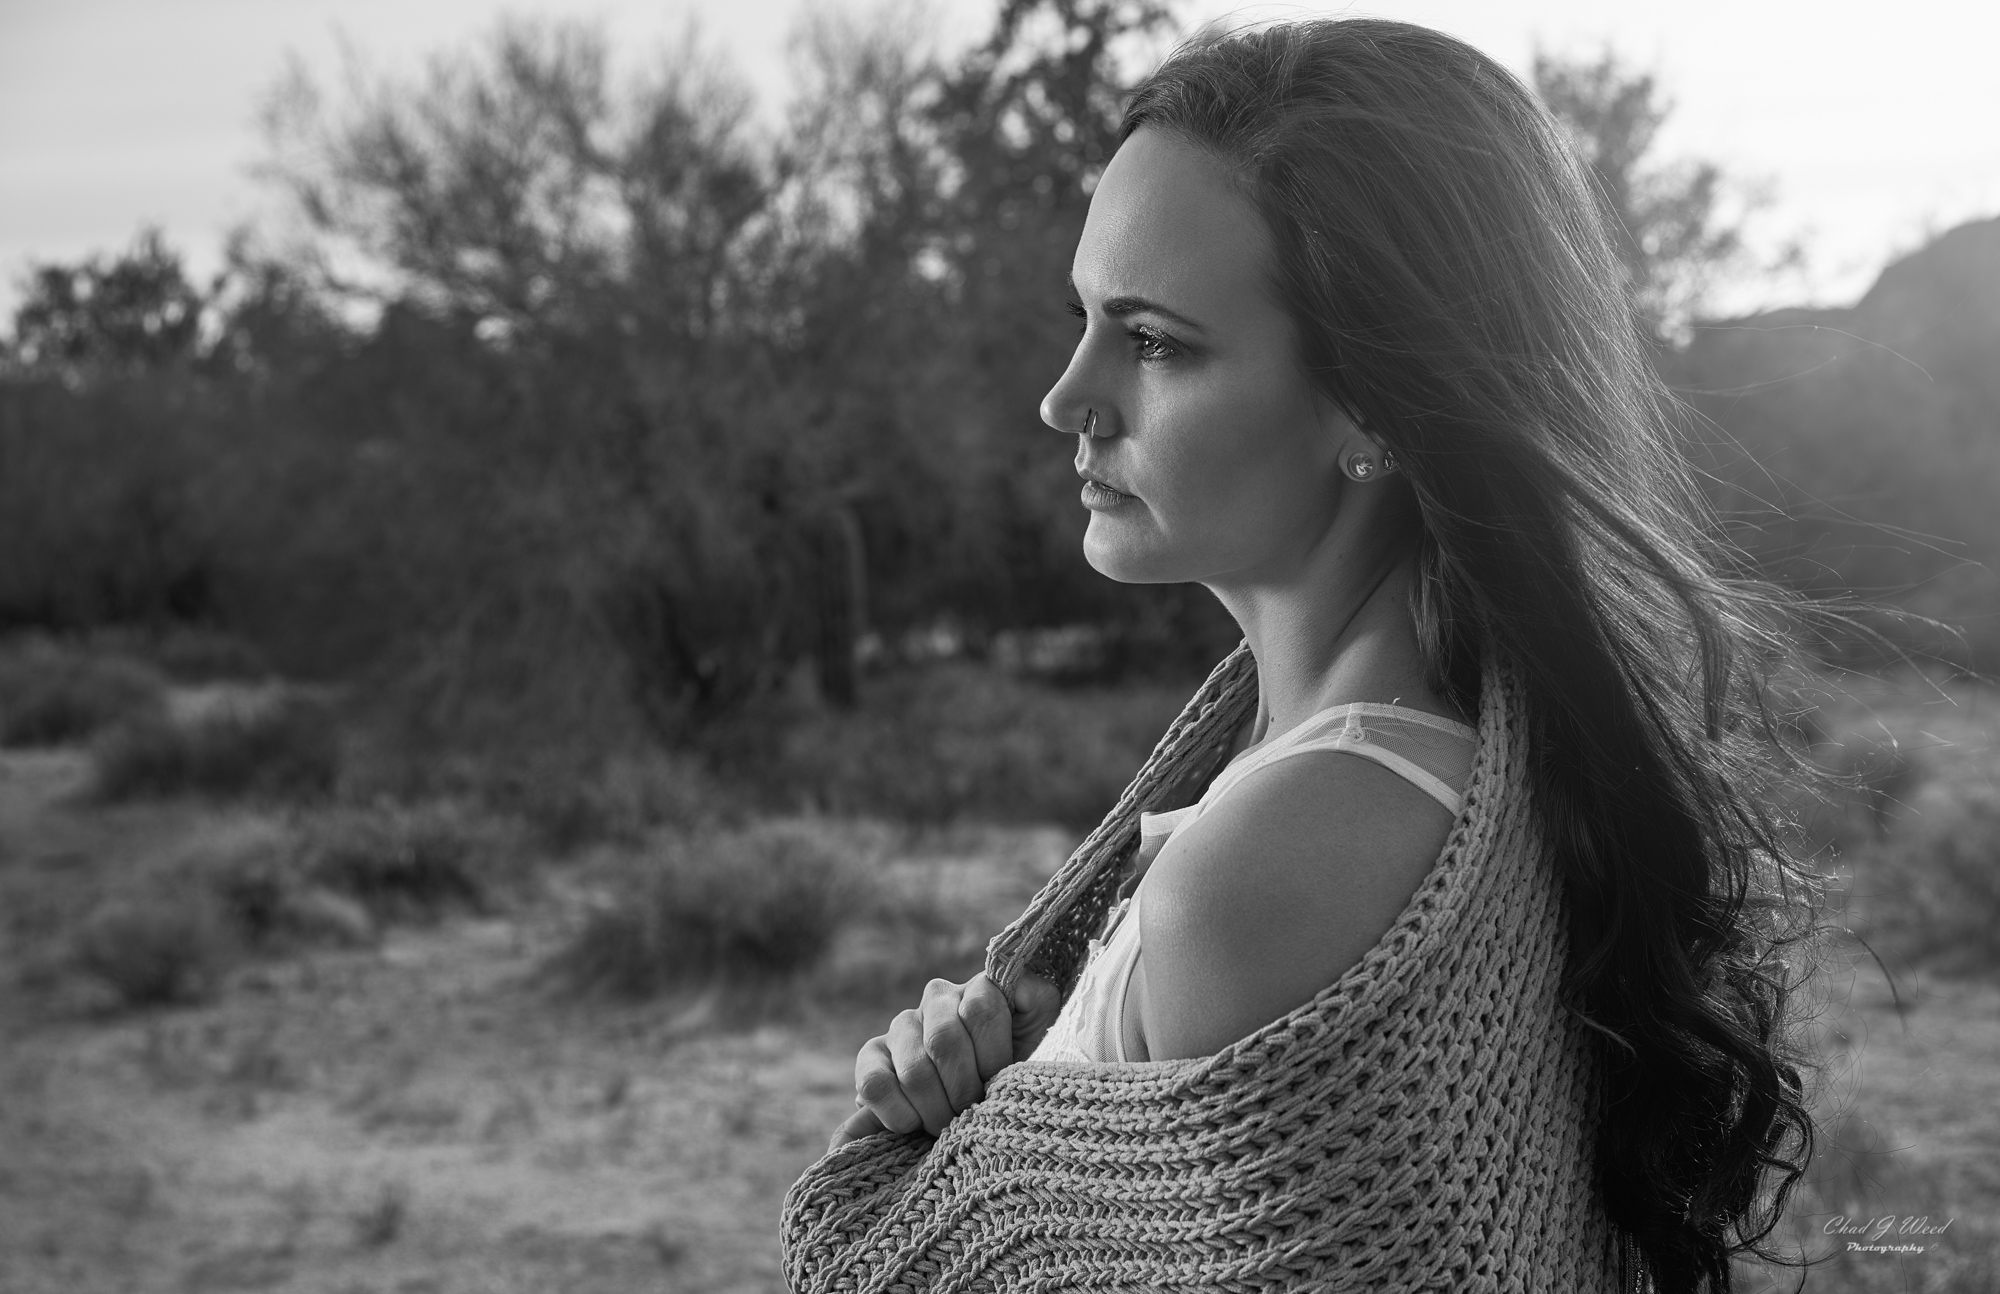 Erica's Editorial Shoot at Superstition Mountains by Mesa Arizona Portrait Photographer Chad Weed